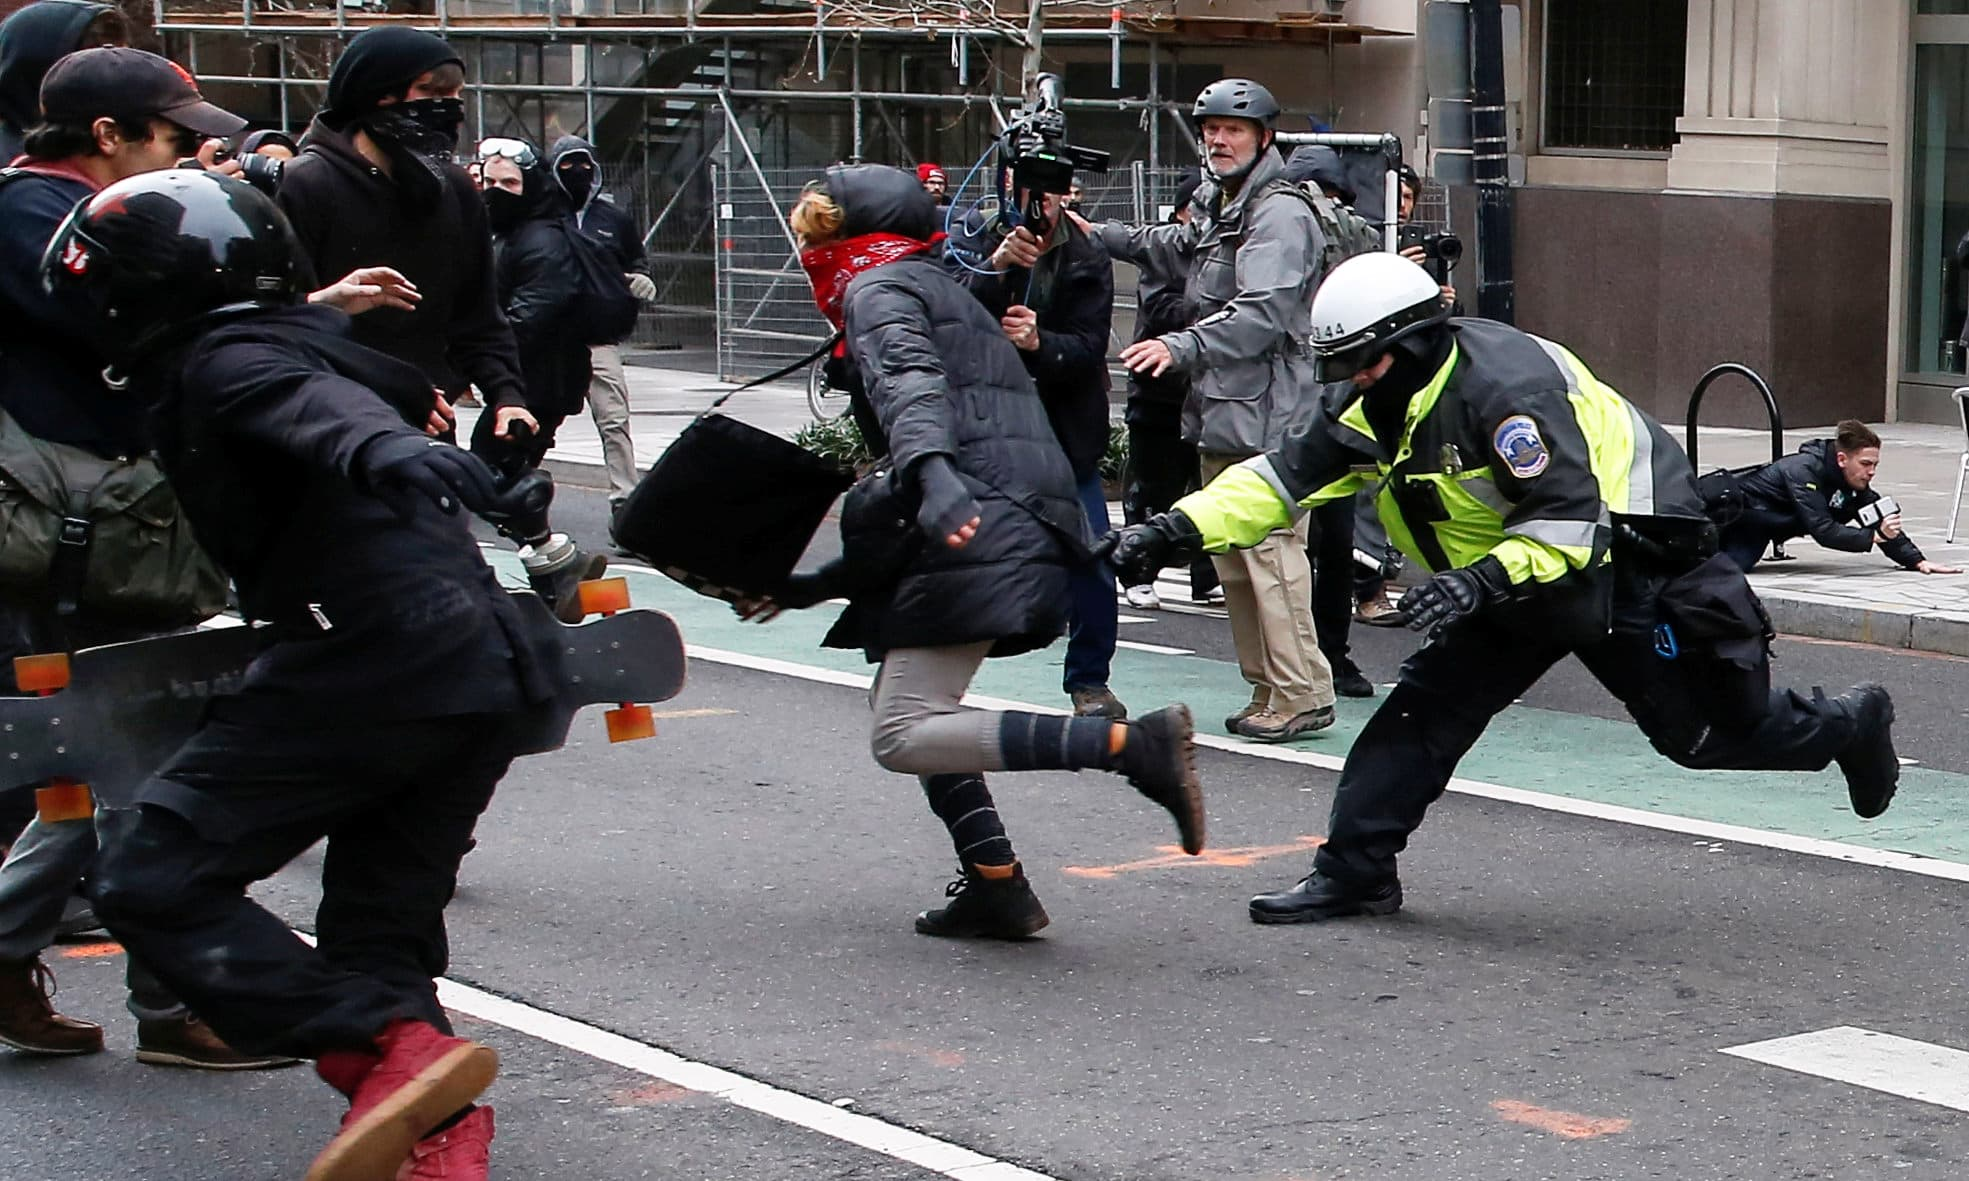 A police officer tries to tackle a protester demonstrating against US President Donald Trump. -Reuters